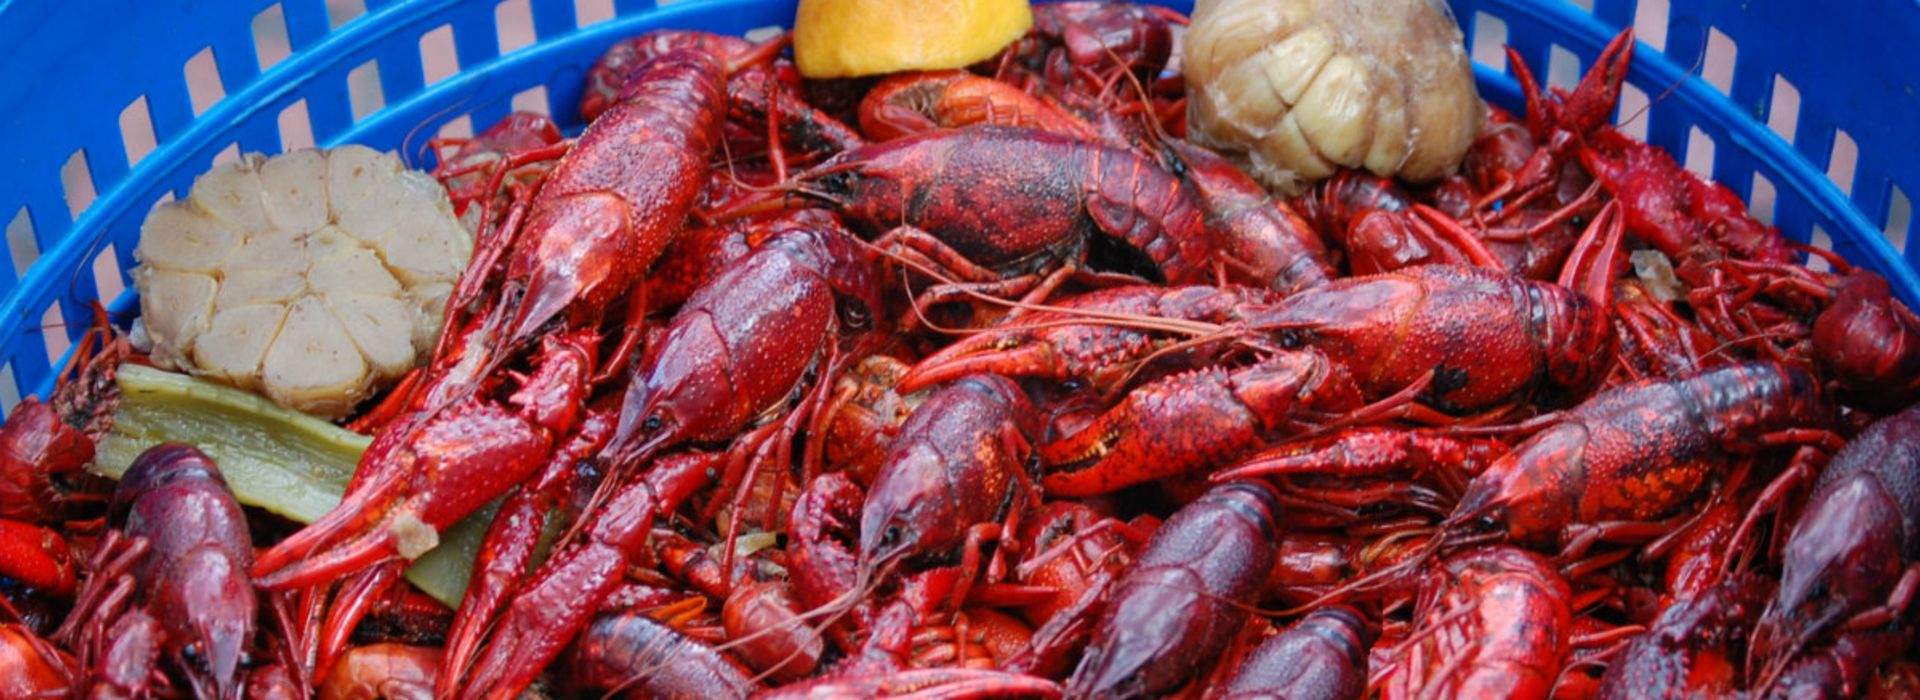 Fresh, Boiled Crawfish